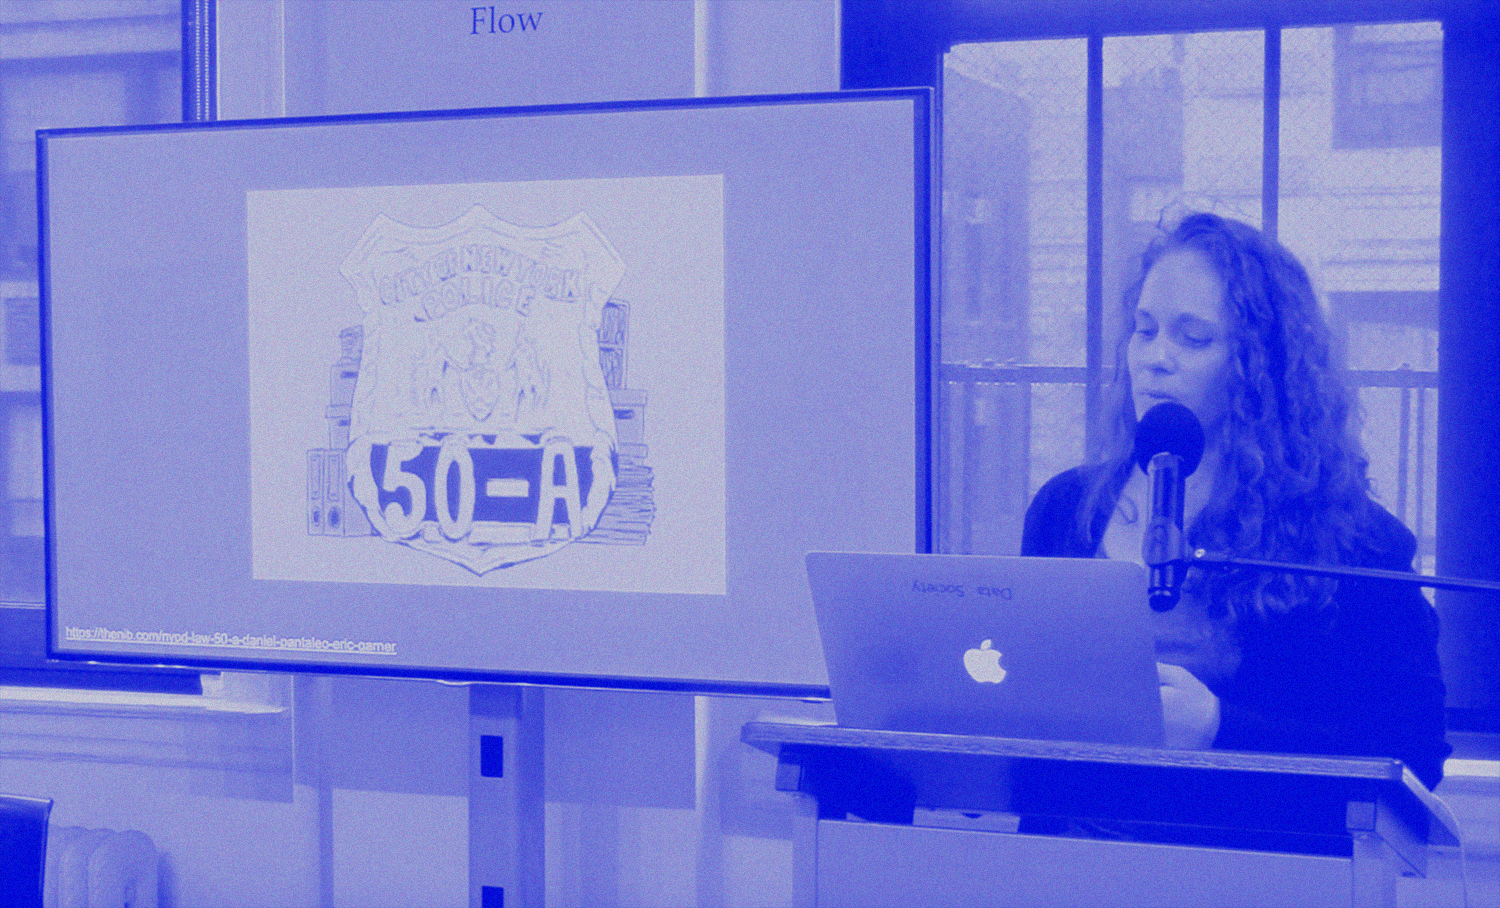 photo of person with long hair speaking into a microphone next to a screen with a large illustration of an NYPD badge with the word